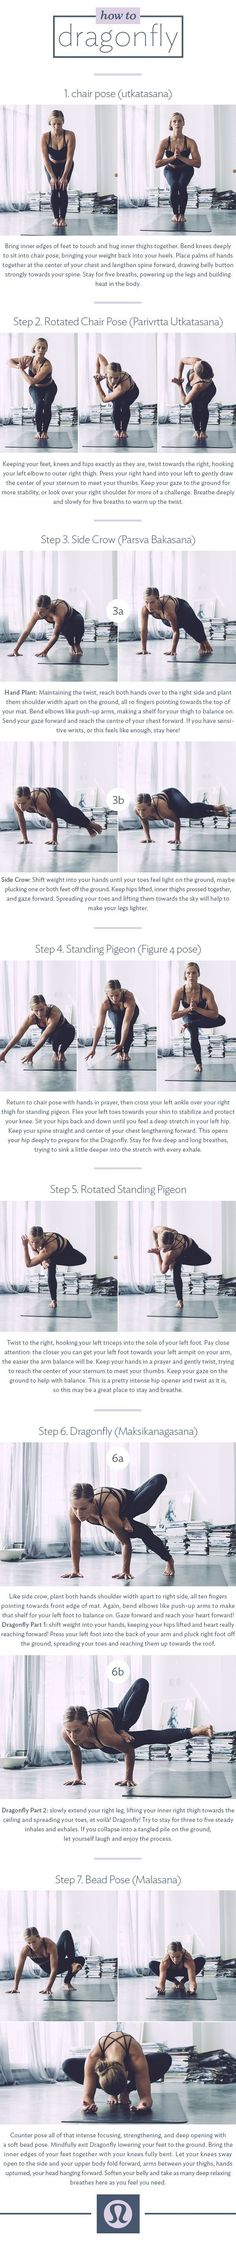 How to Dragonfly in seven steps | Inspiration | Sequences | Loved and pinned by www.nocyoga.com